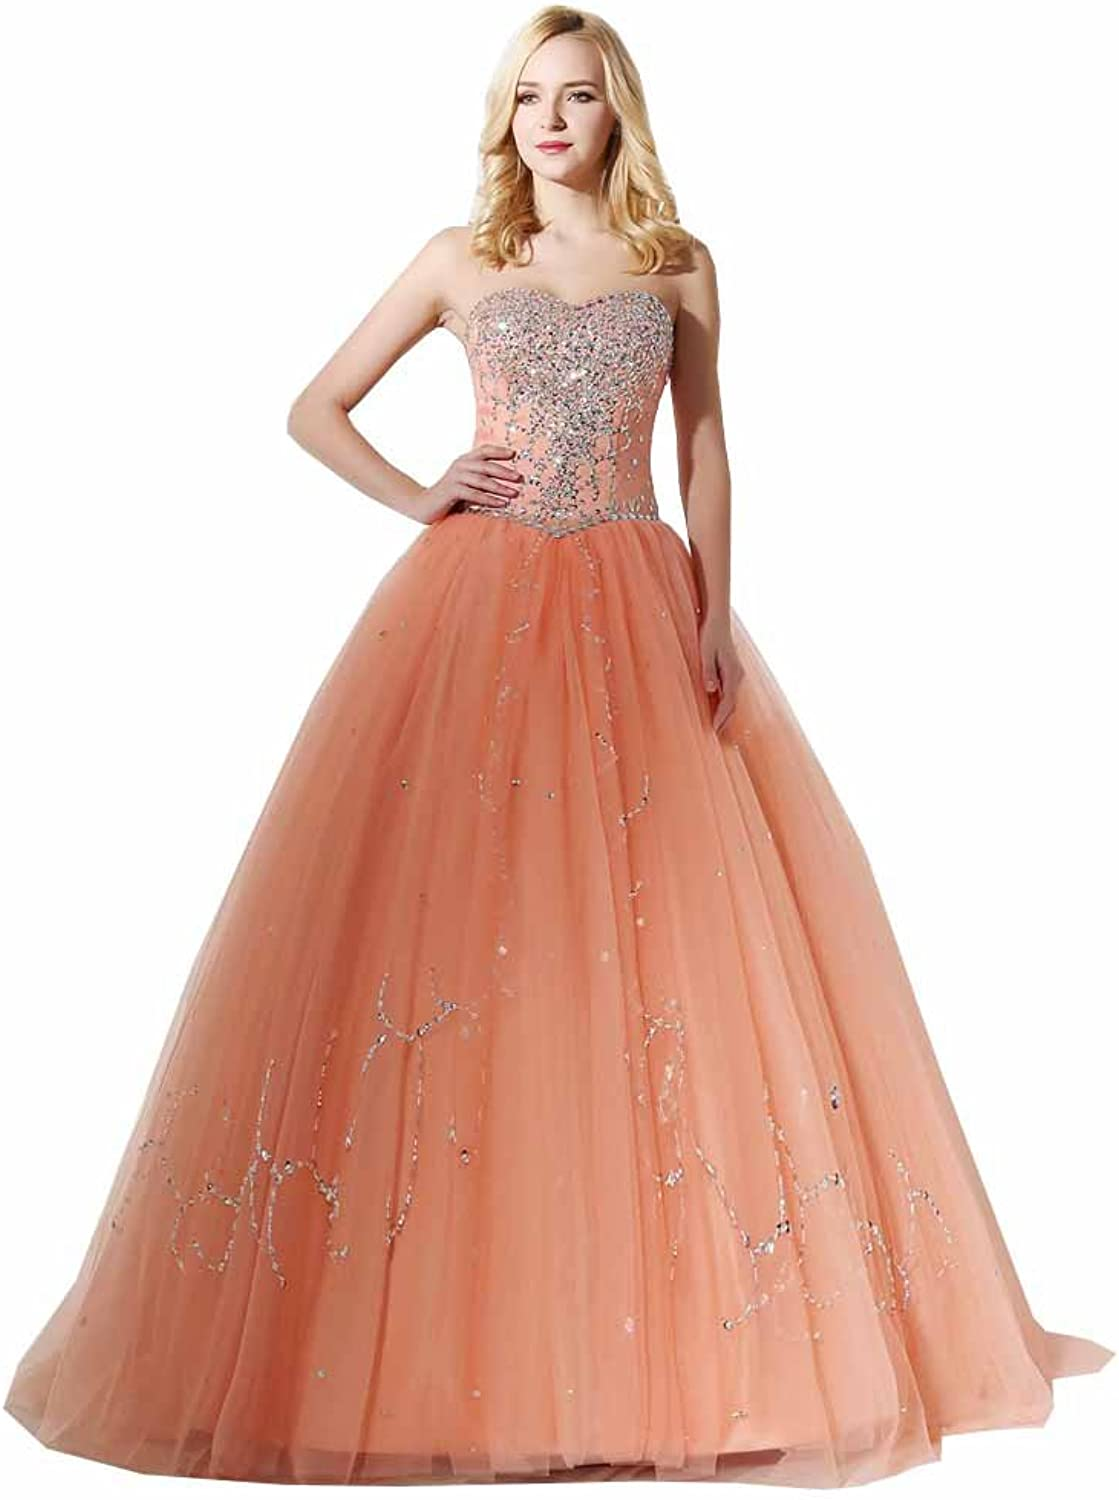 Engerla Women's Sequined Long ALine Tulle Sweetheart Long Prom Ball Gown